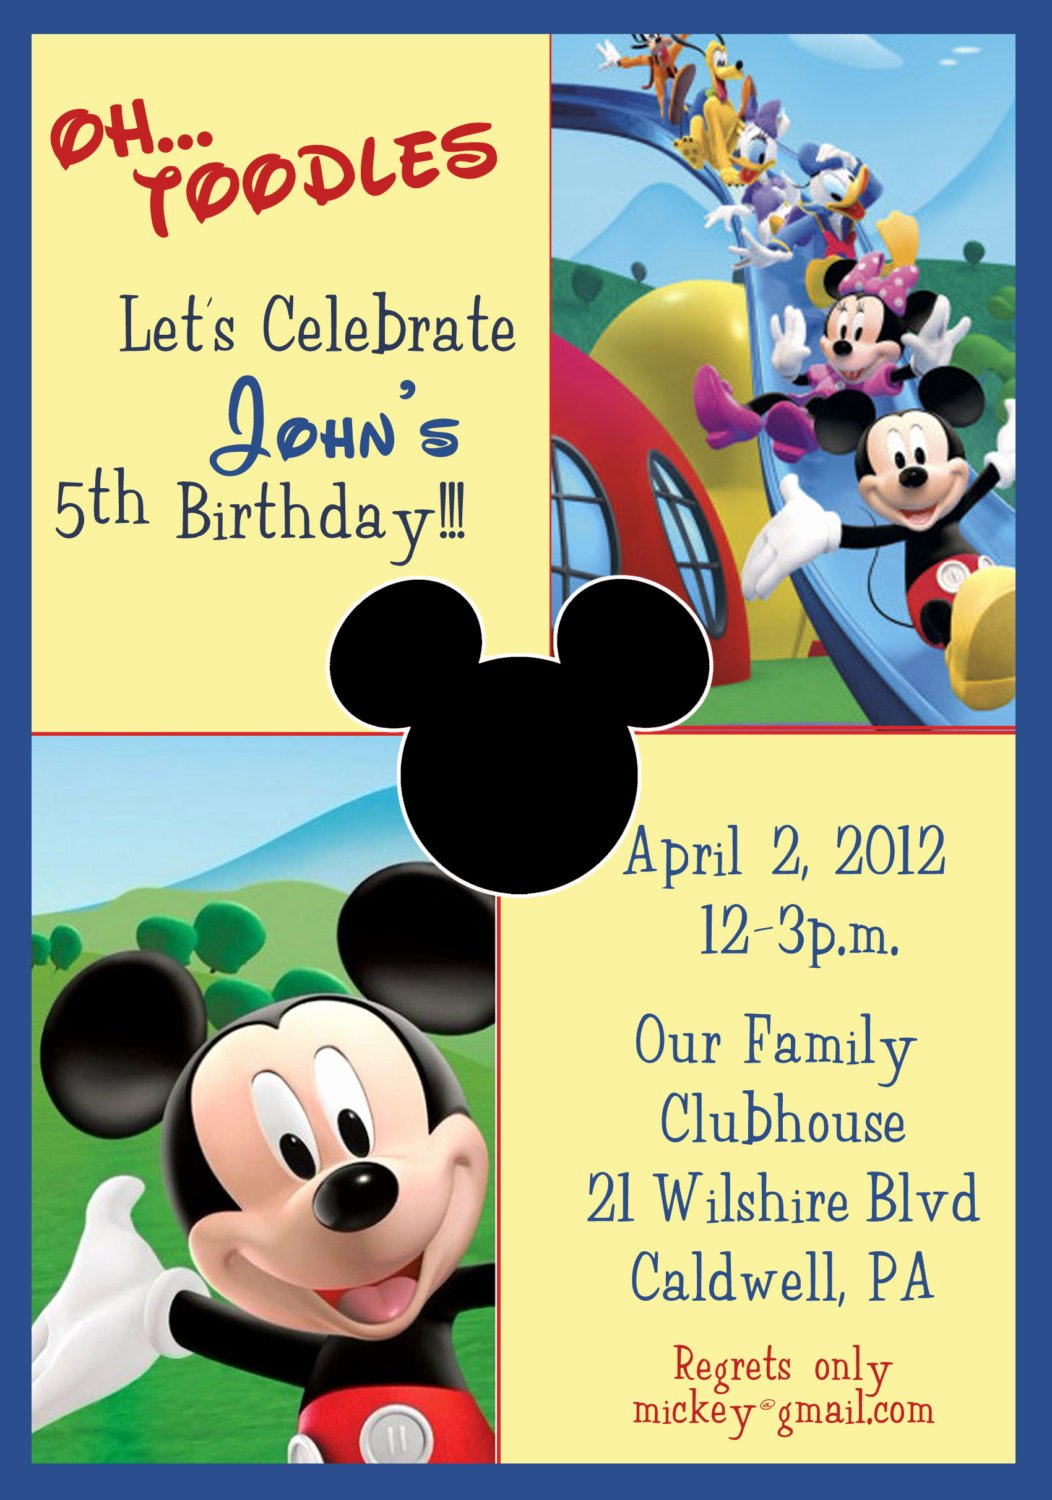 Mickey Mouse Clubhouse Invitation Lovely Mickey Mouse Clubhouse Birthday Invitations Mickey Mouse